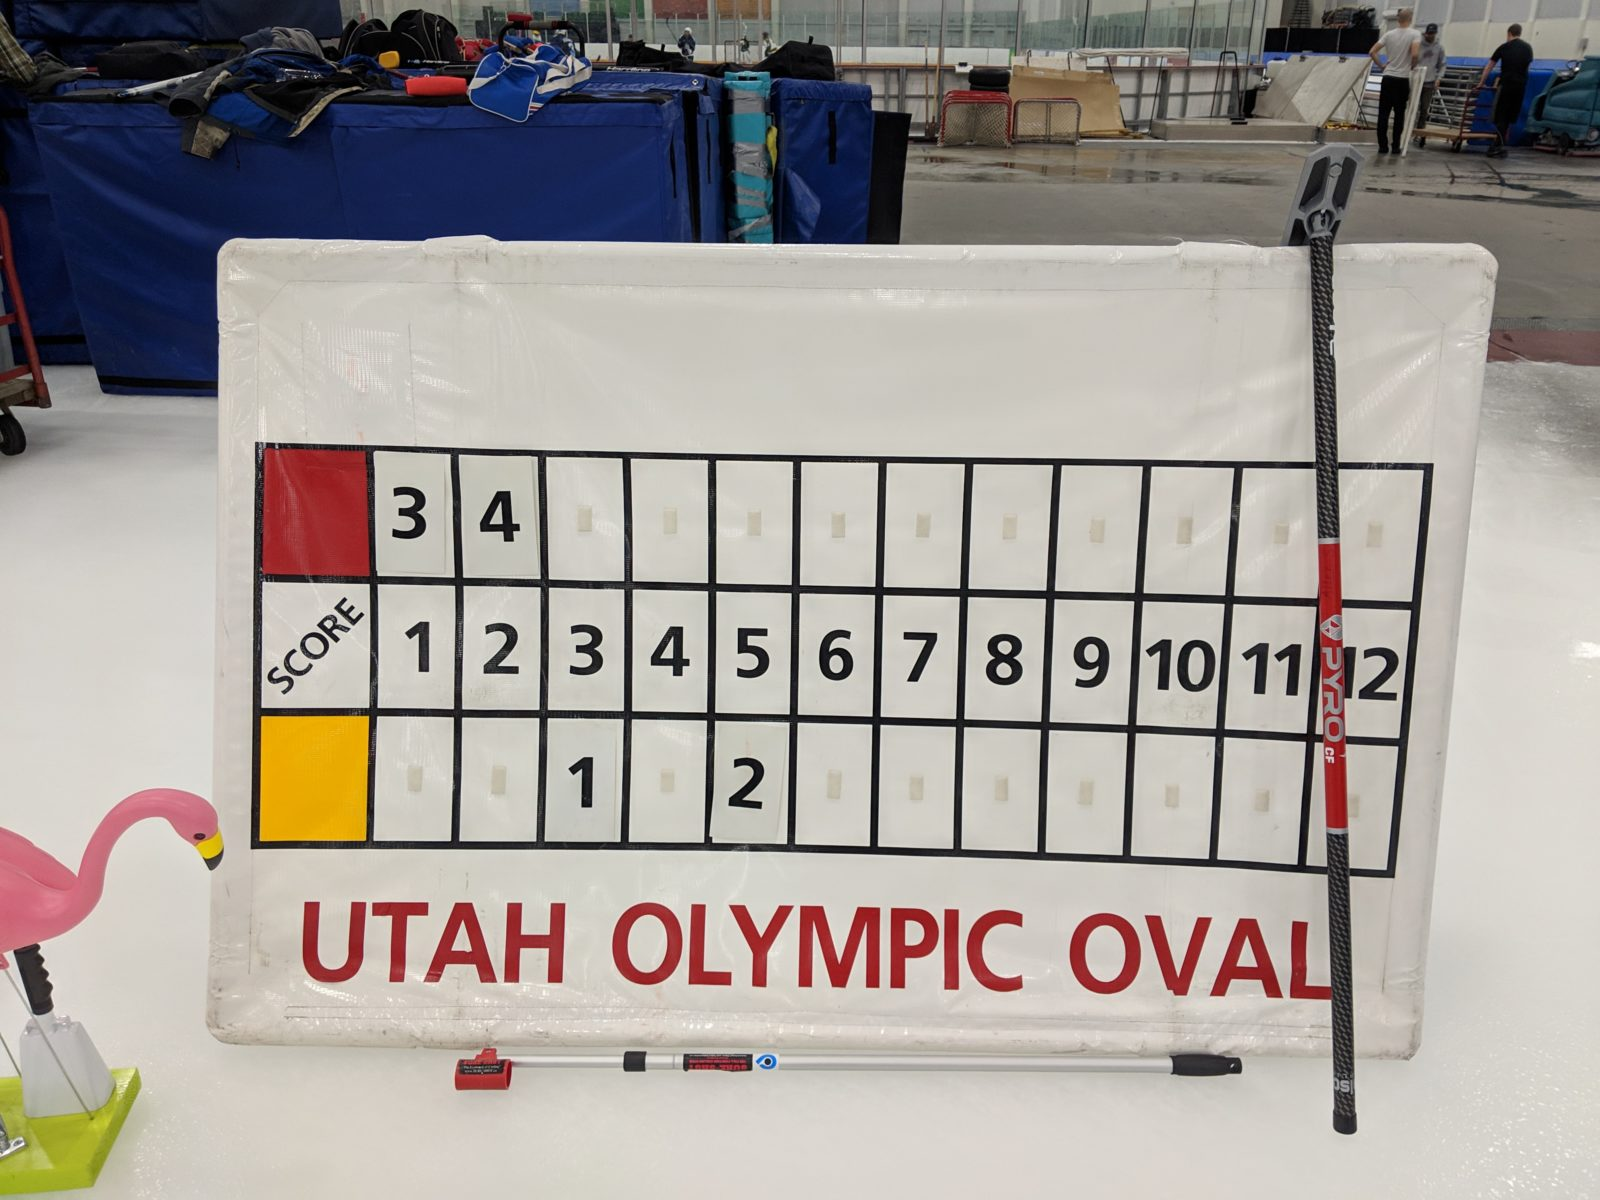 The scoreboard from my first winning game as a skip on Monday, Feb. 26, 2019, at the Utah Olympic Oval in Kearns.